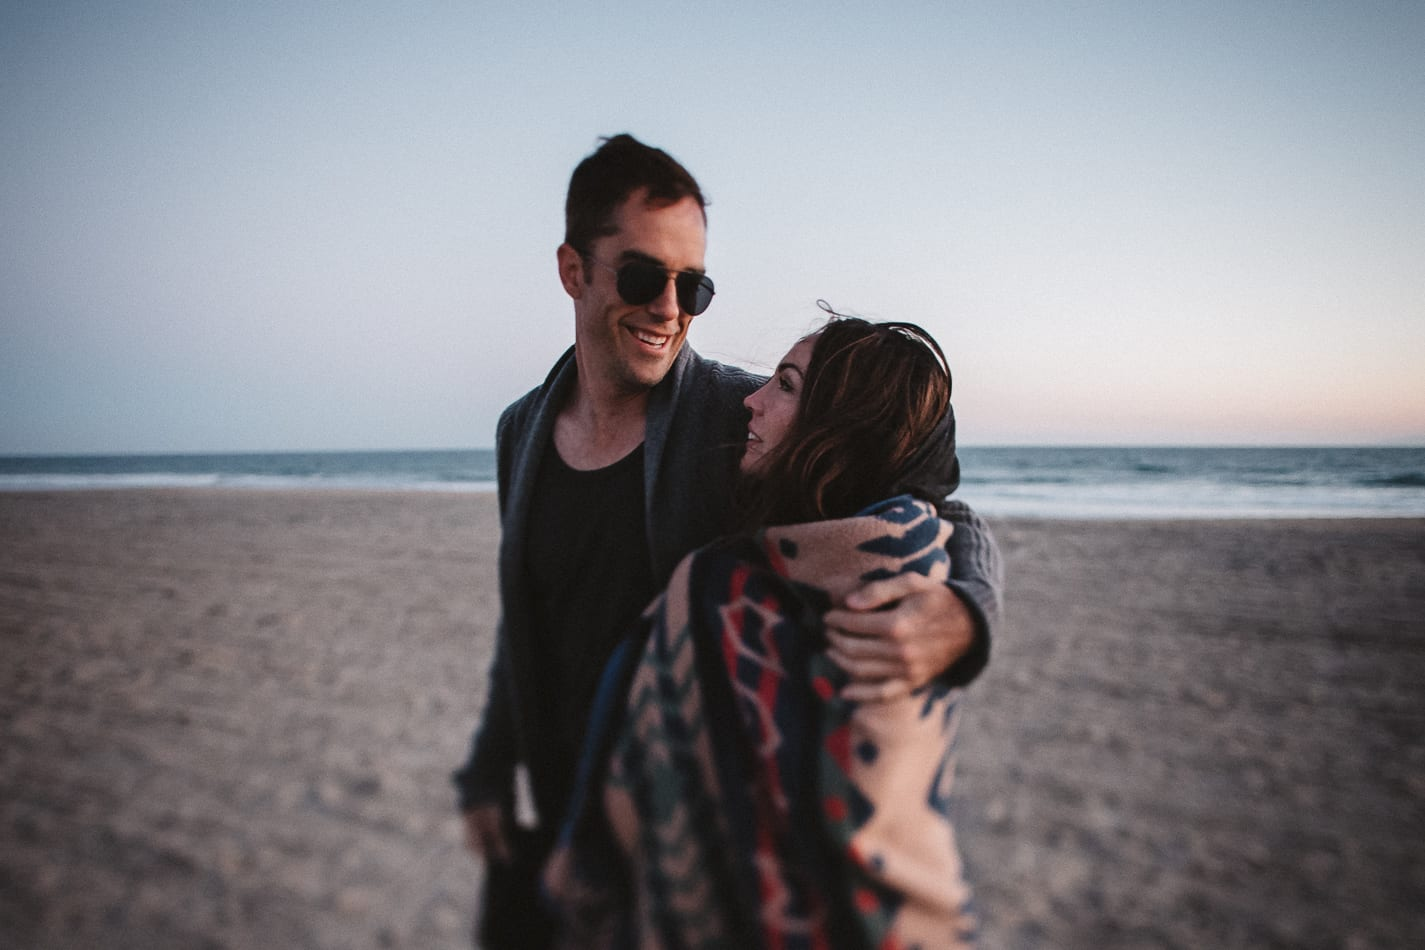 jason-alyssa-huntington-beach-california-engagement-photographer-45